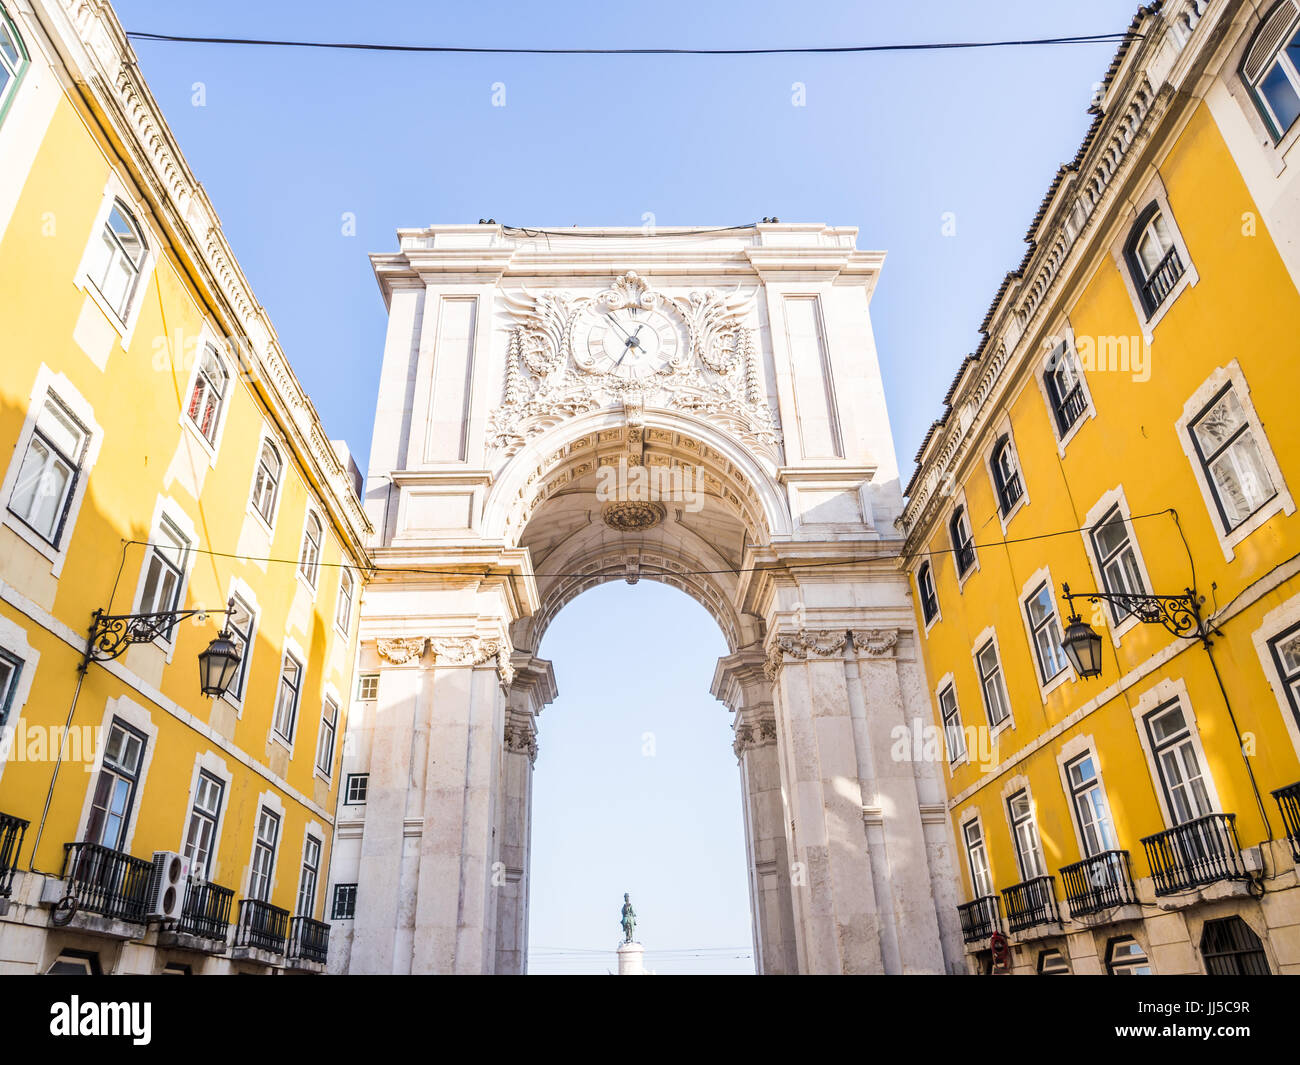 The Rua Augusta Arch, a triumphal arch-like, historical building in Lisbon, Portugal, on the Praca do Comércio. - Stock Image